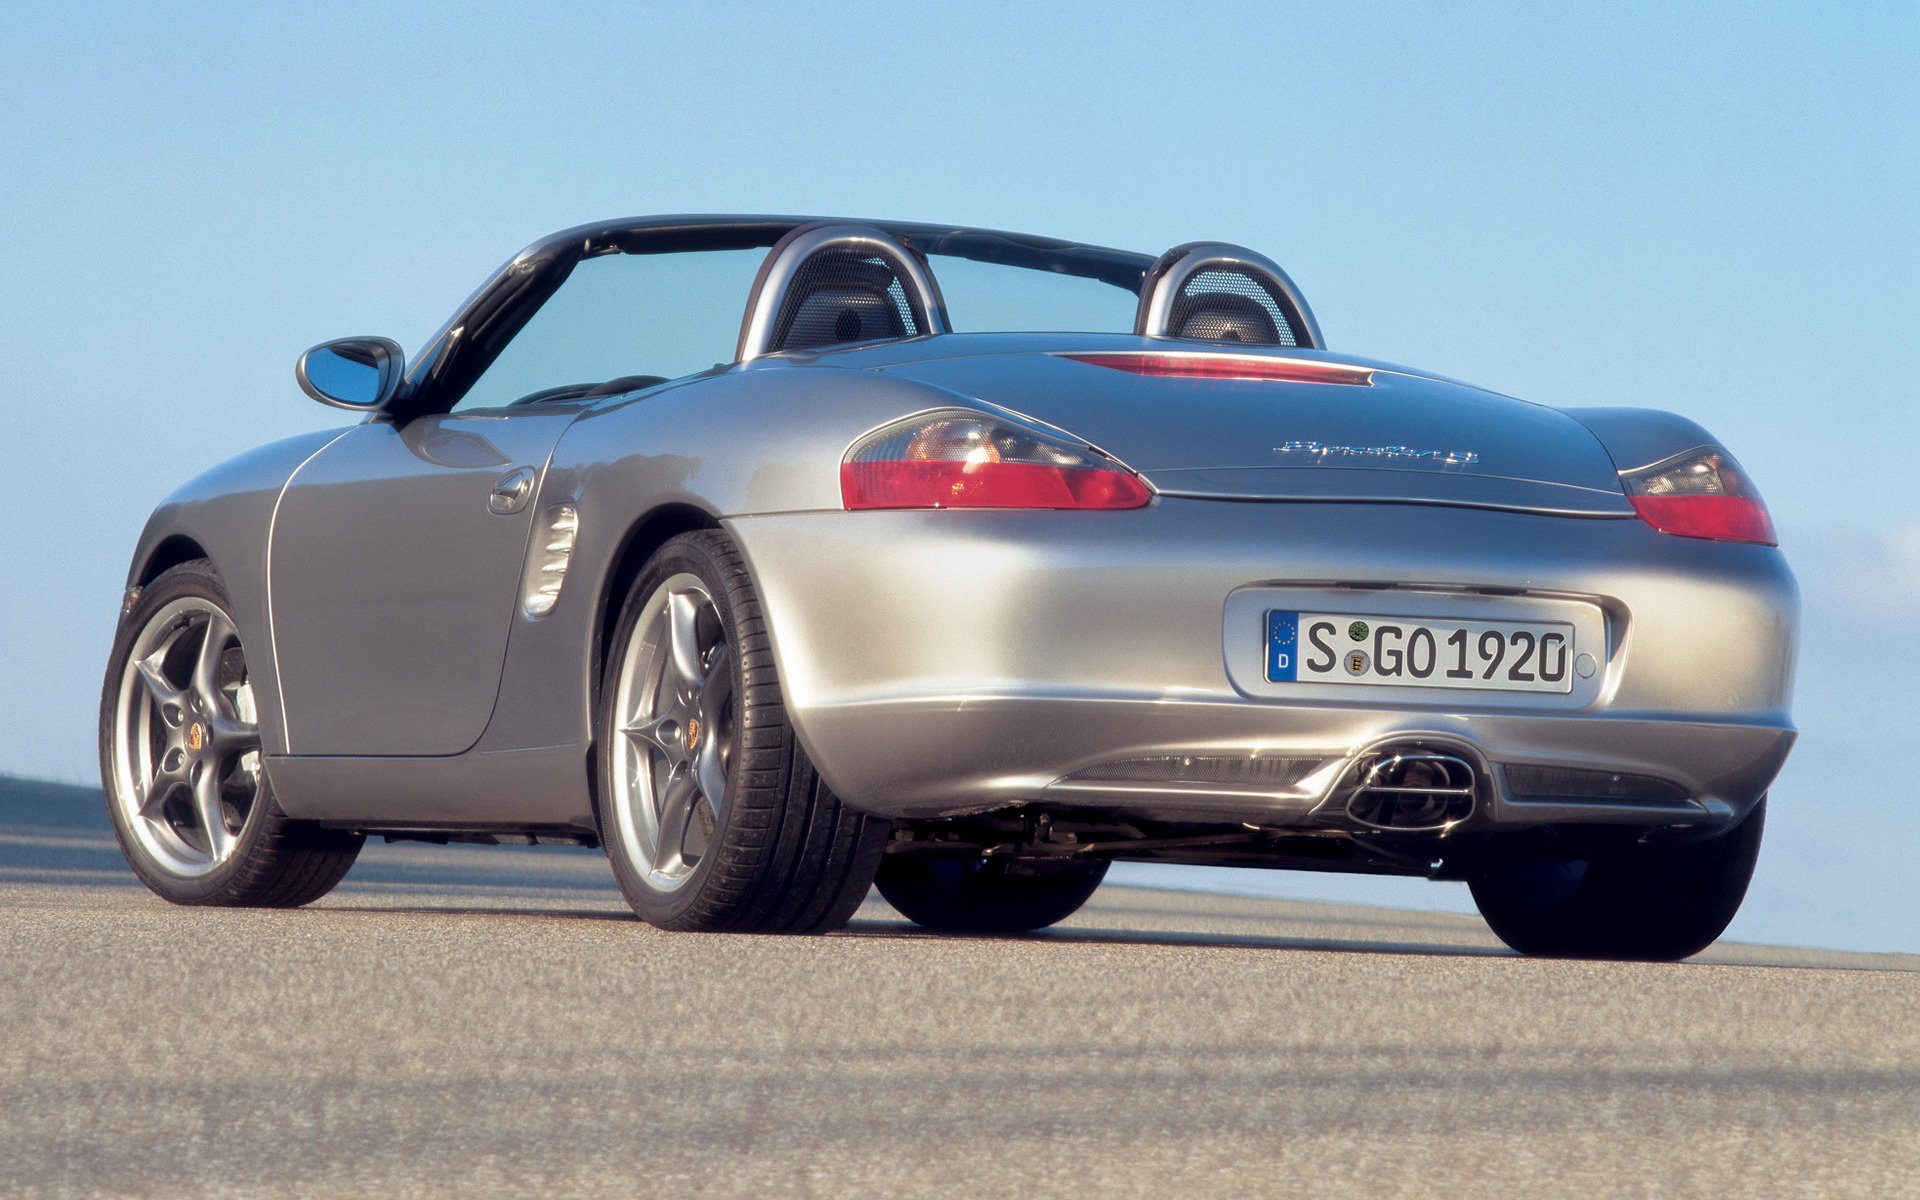 Porsche Boxster S 50 Years 550 Spyder 2004 Wallpapers